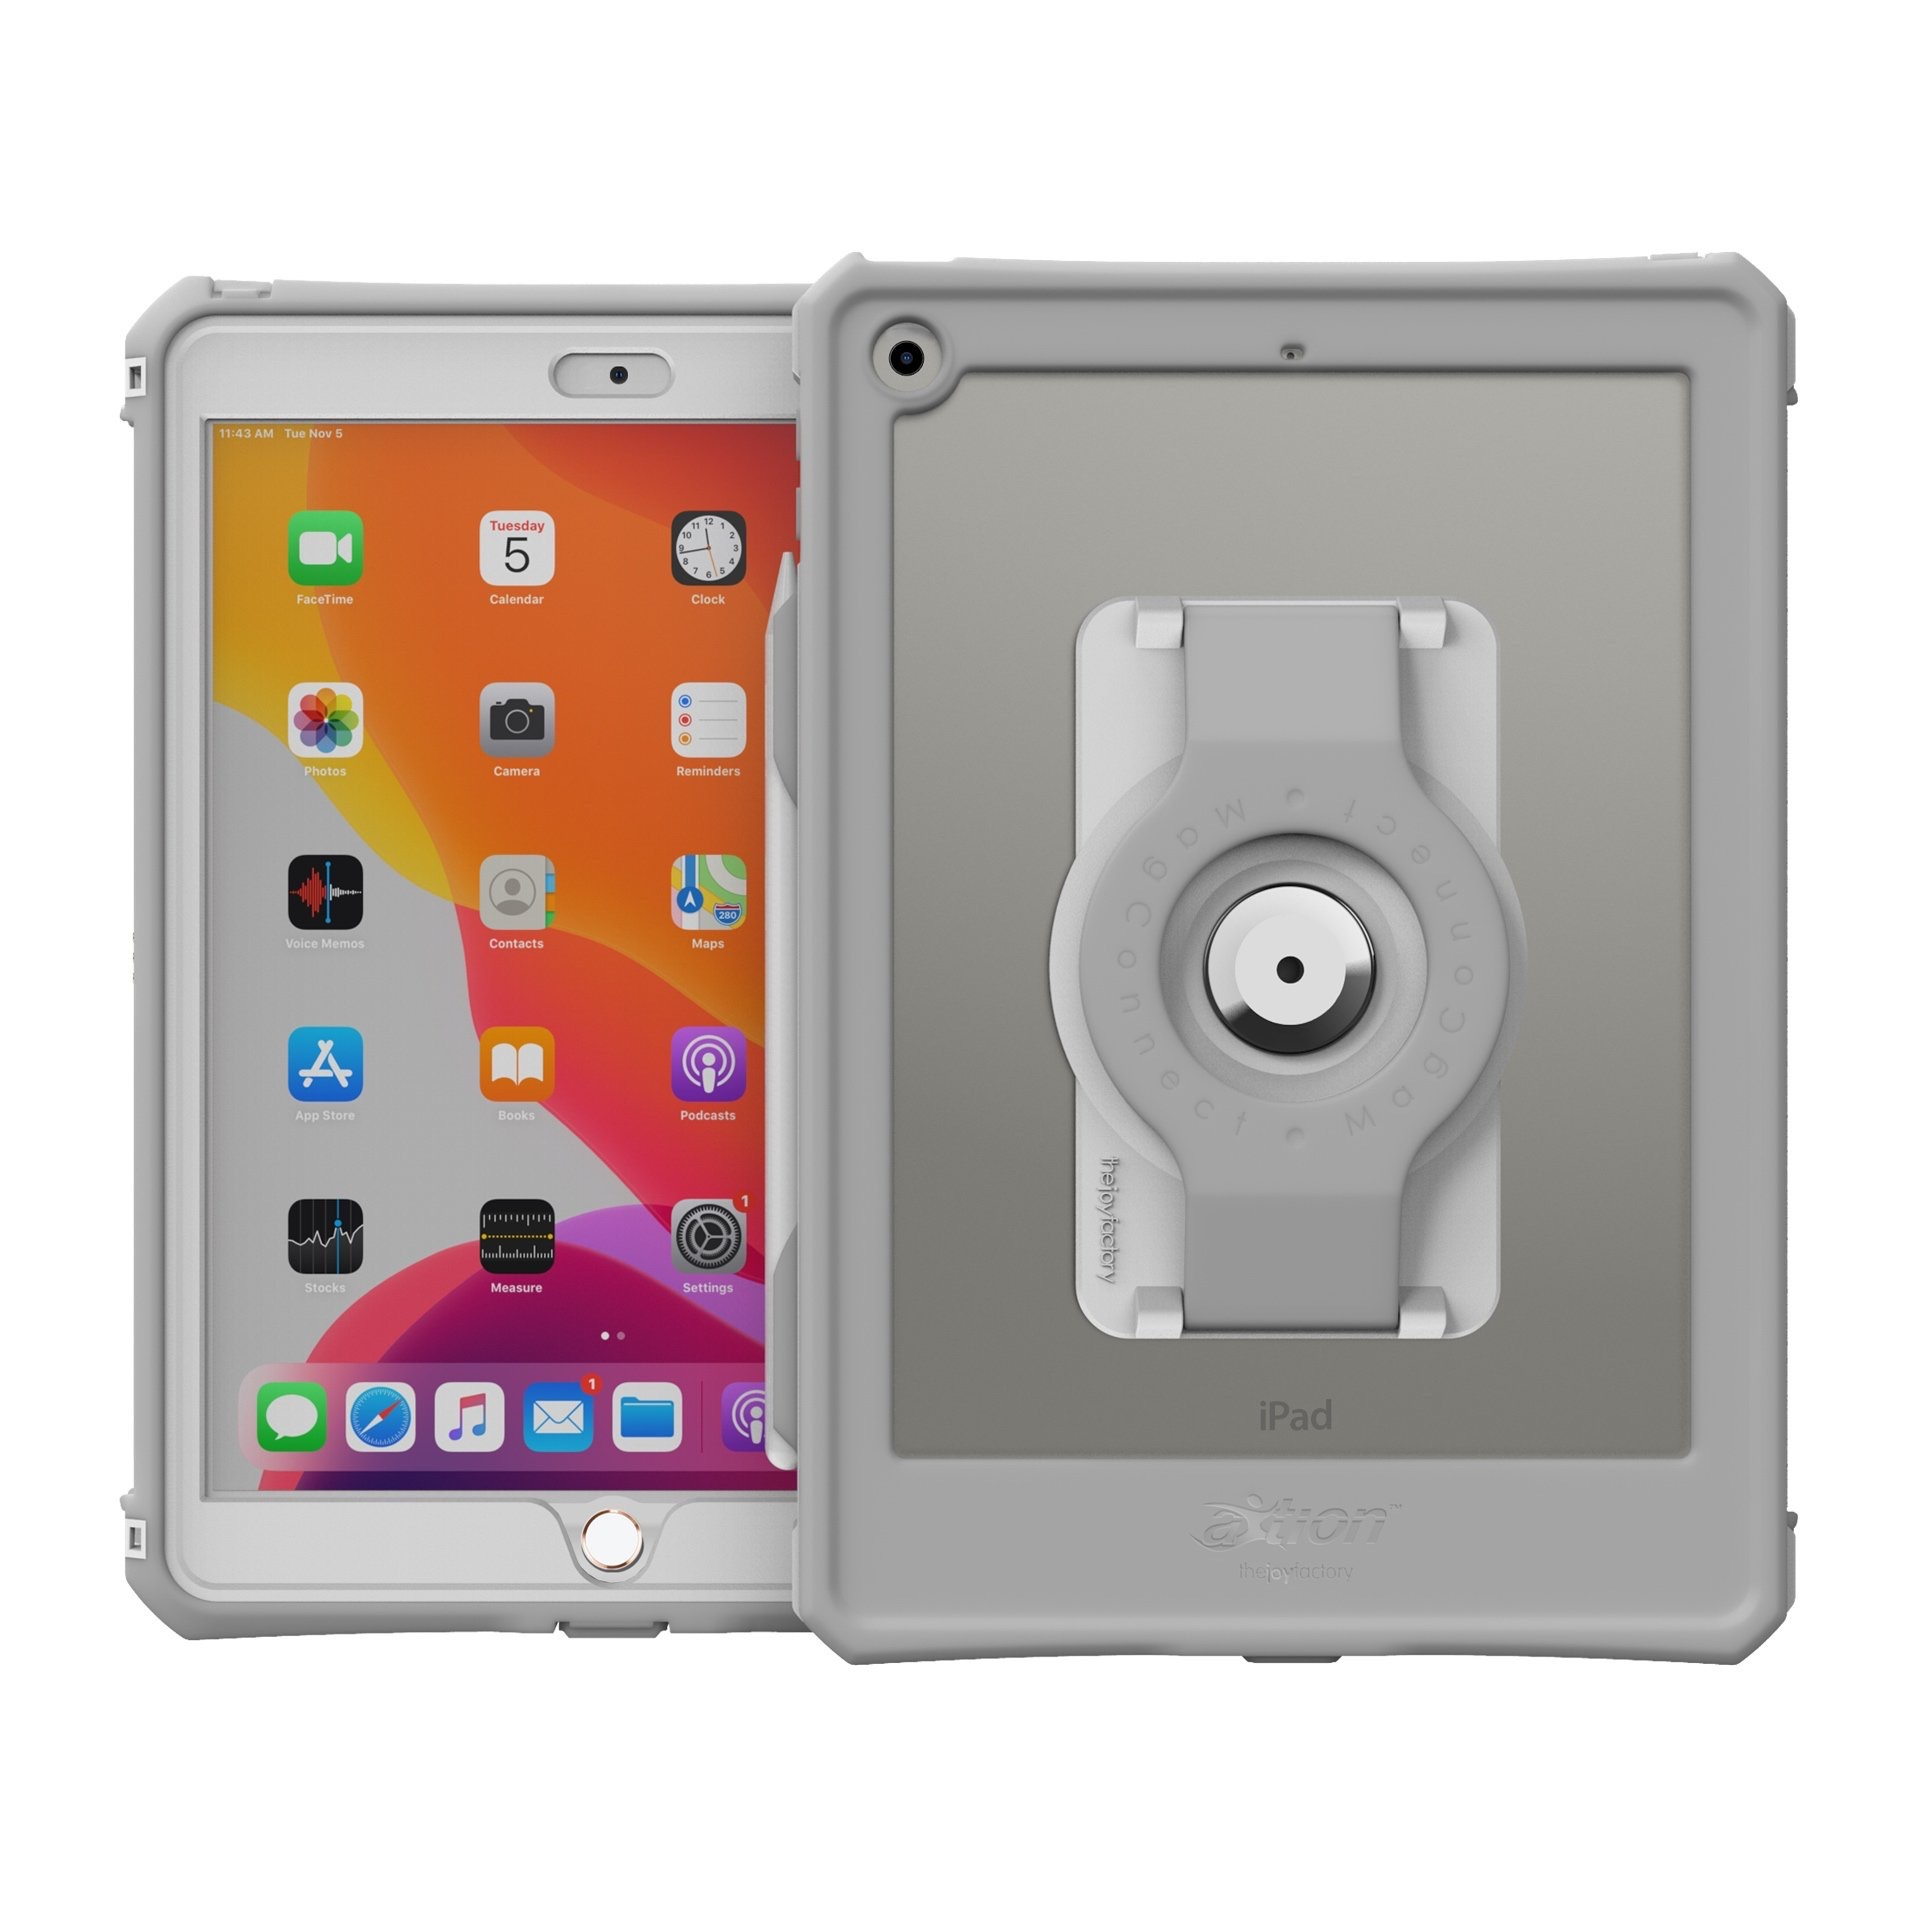 iPAD 10.2 pouces Coque Protection etanche iP68 avec sangle main rotative souple Slim Connect Gris